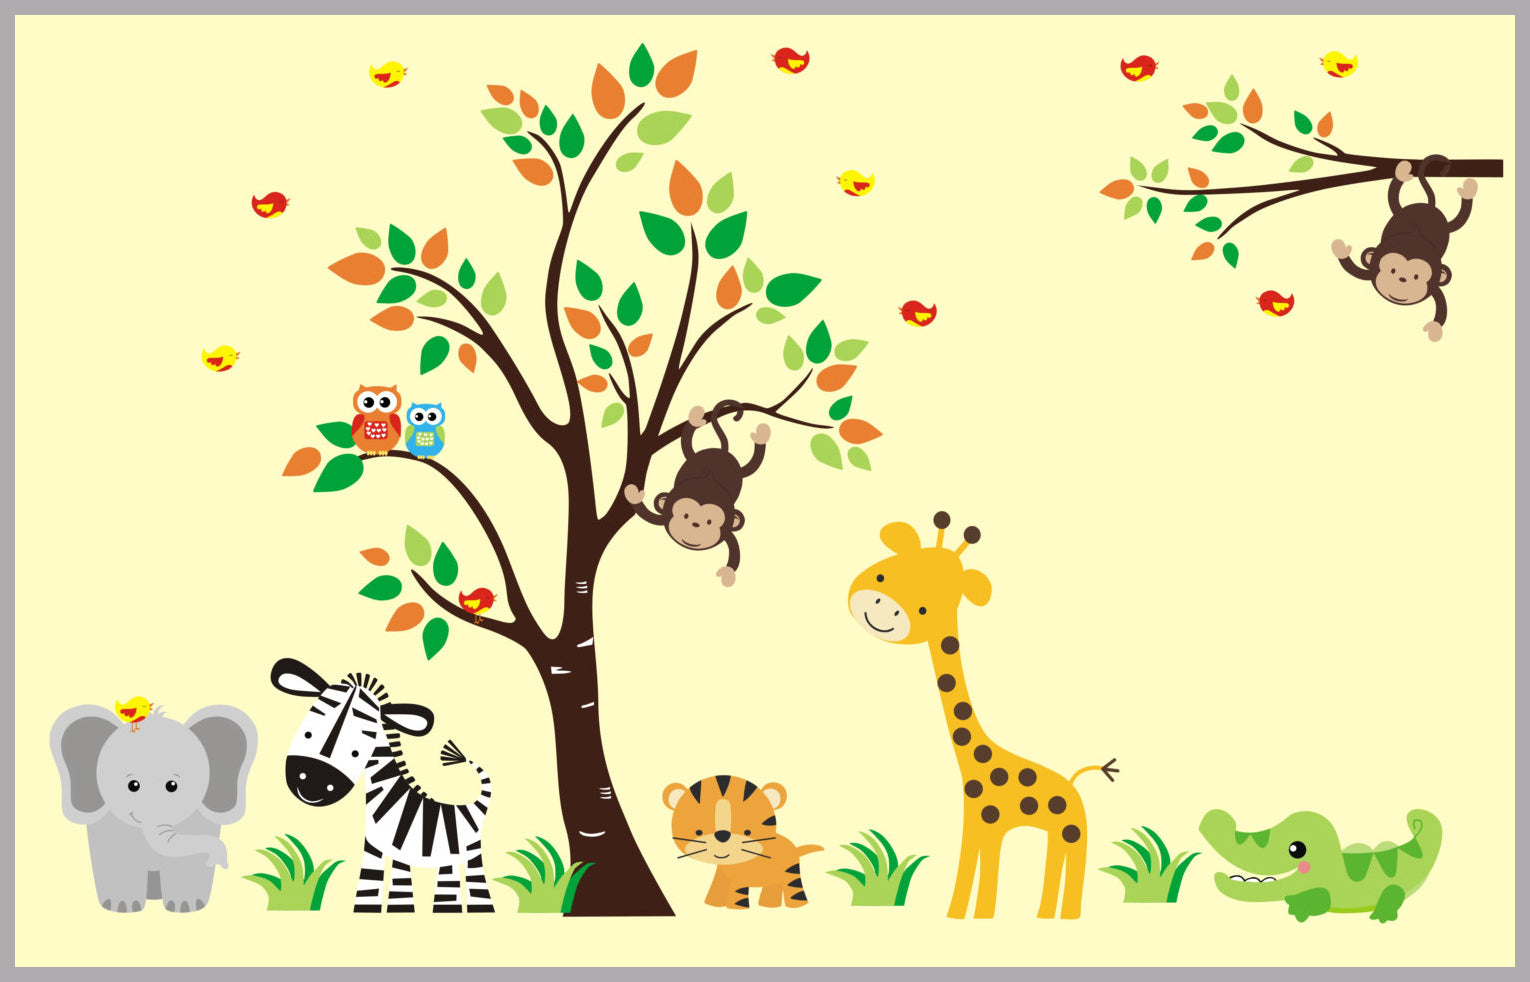 Nursery Room Decorations | Nursery Wall Decal | Nursery Design ...